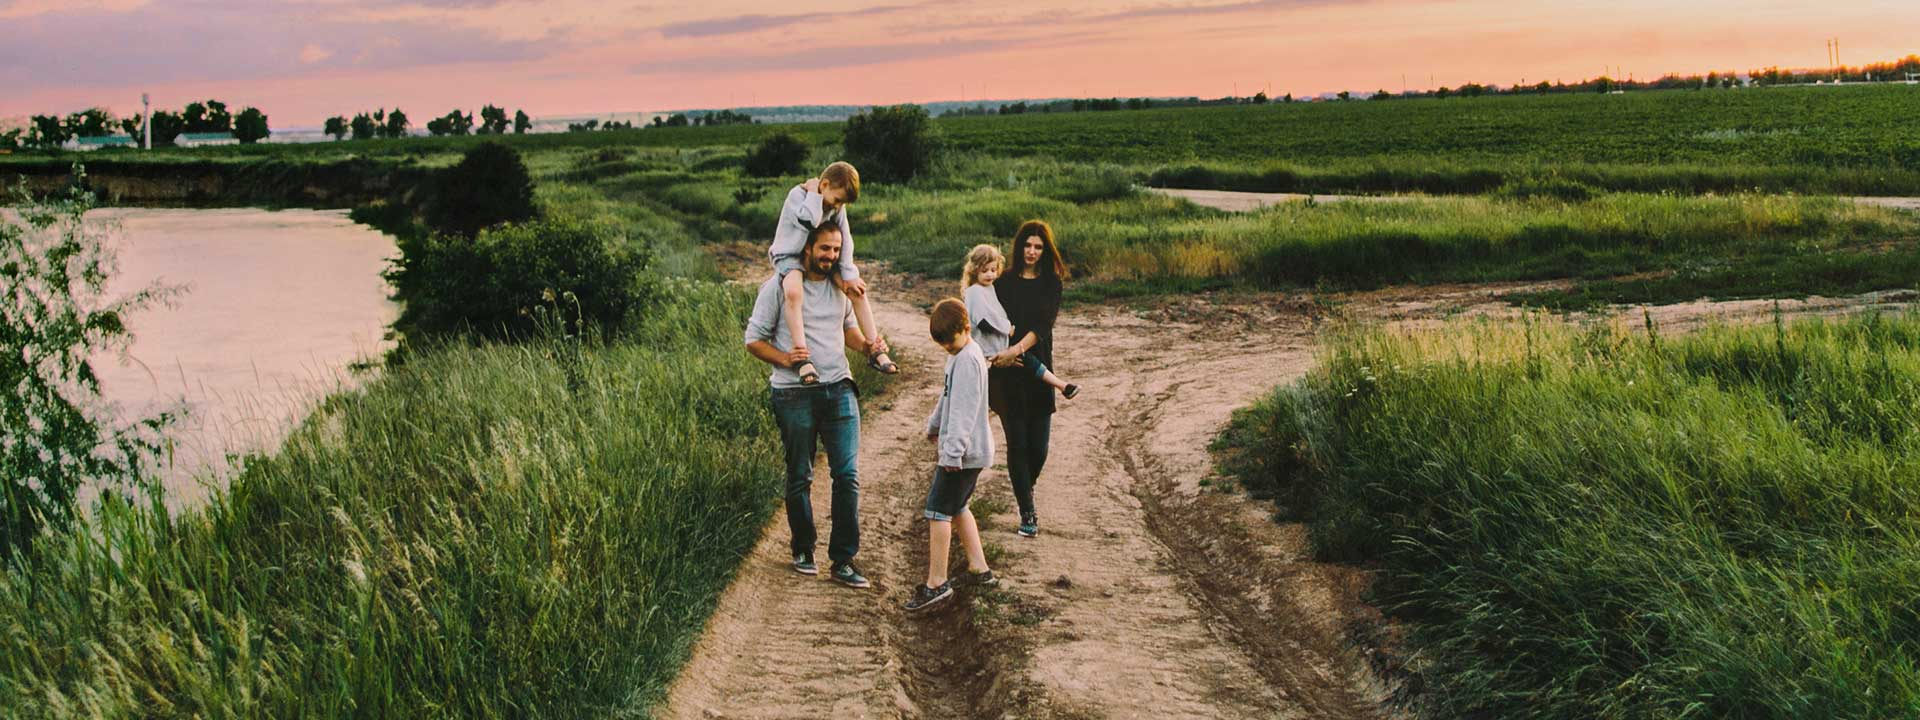 A family walking casually down an empty dirt road at sunset